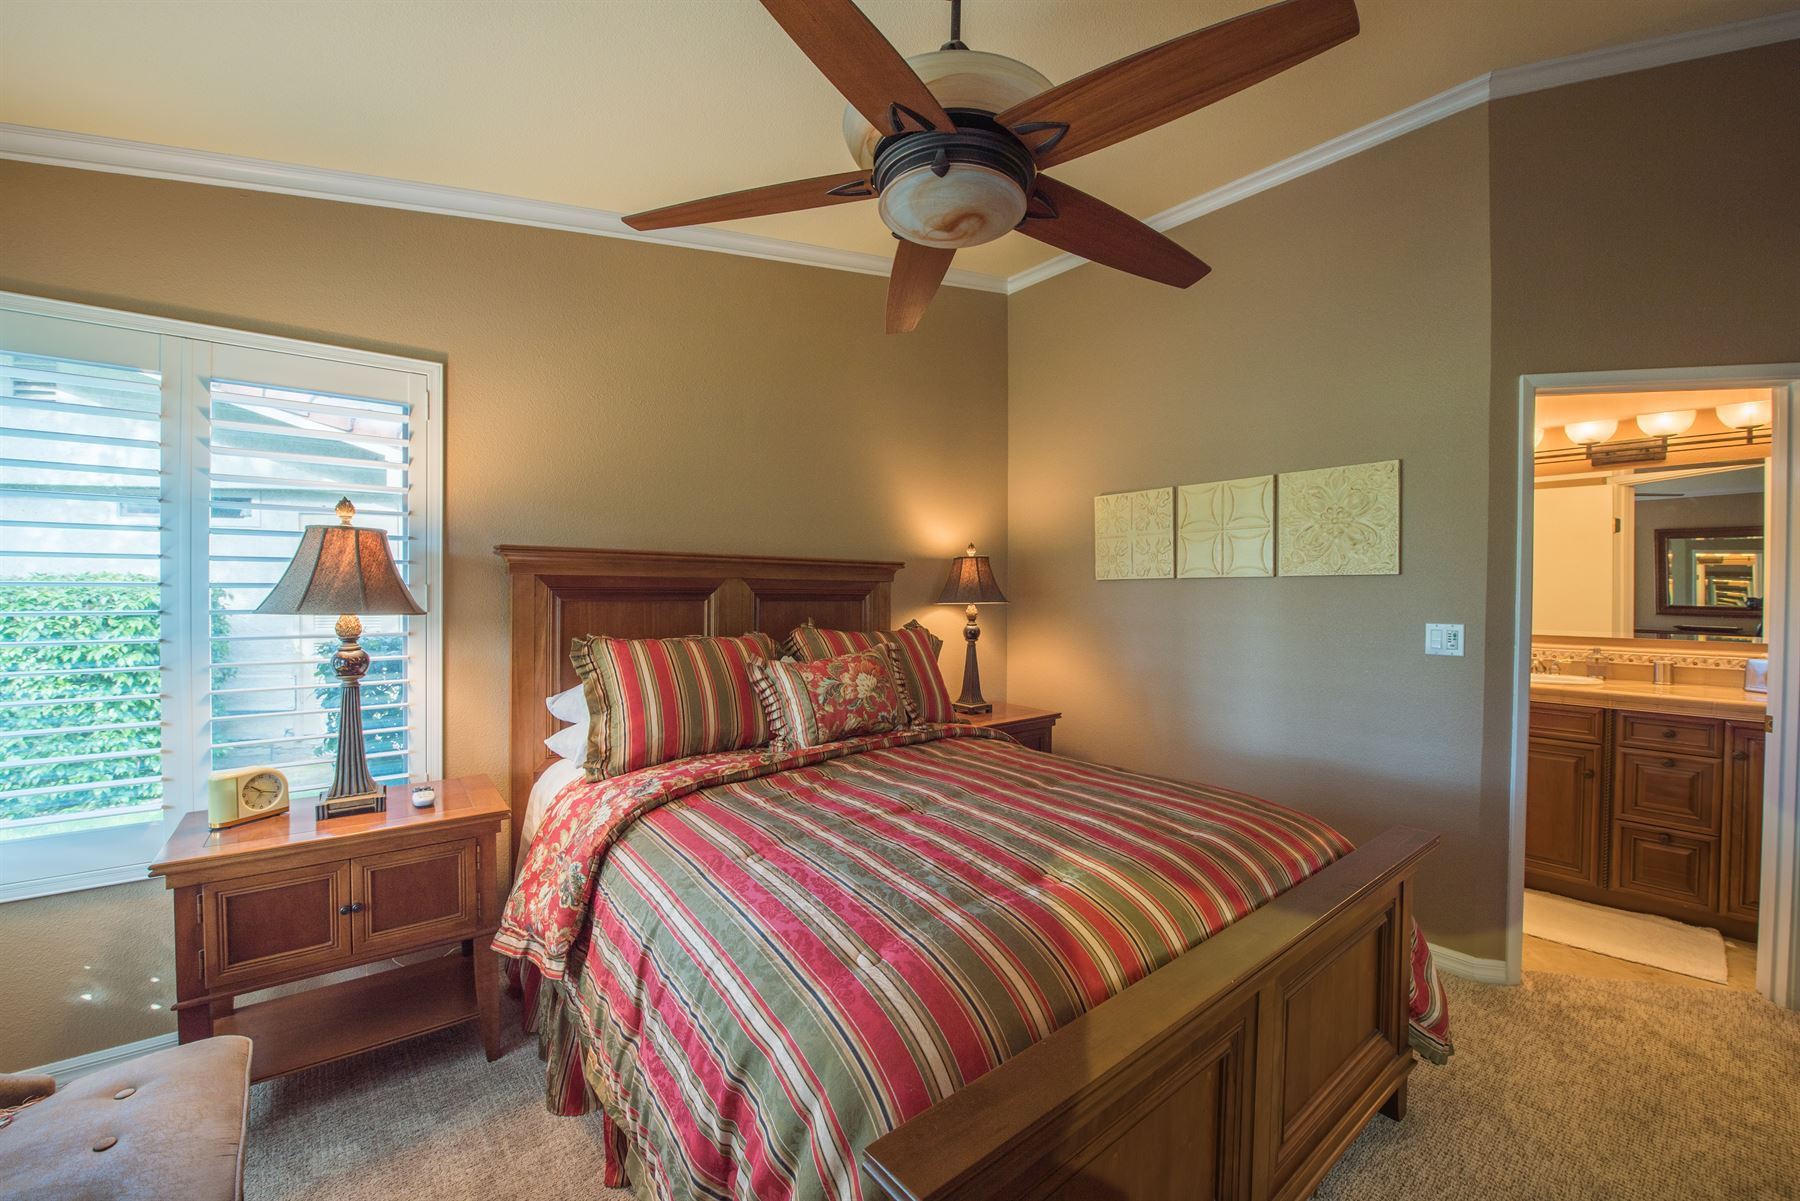 Golfer's Getaway - Interior - Bedroom with autumn colored linens